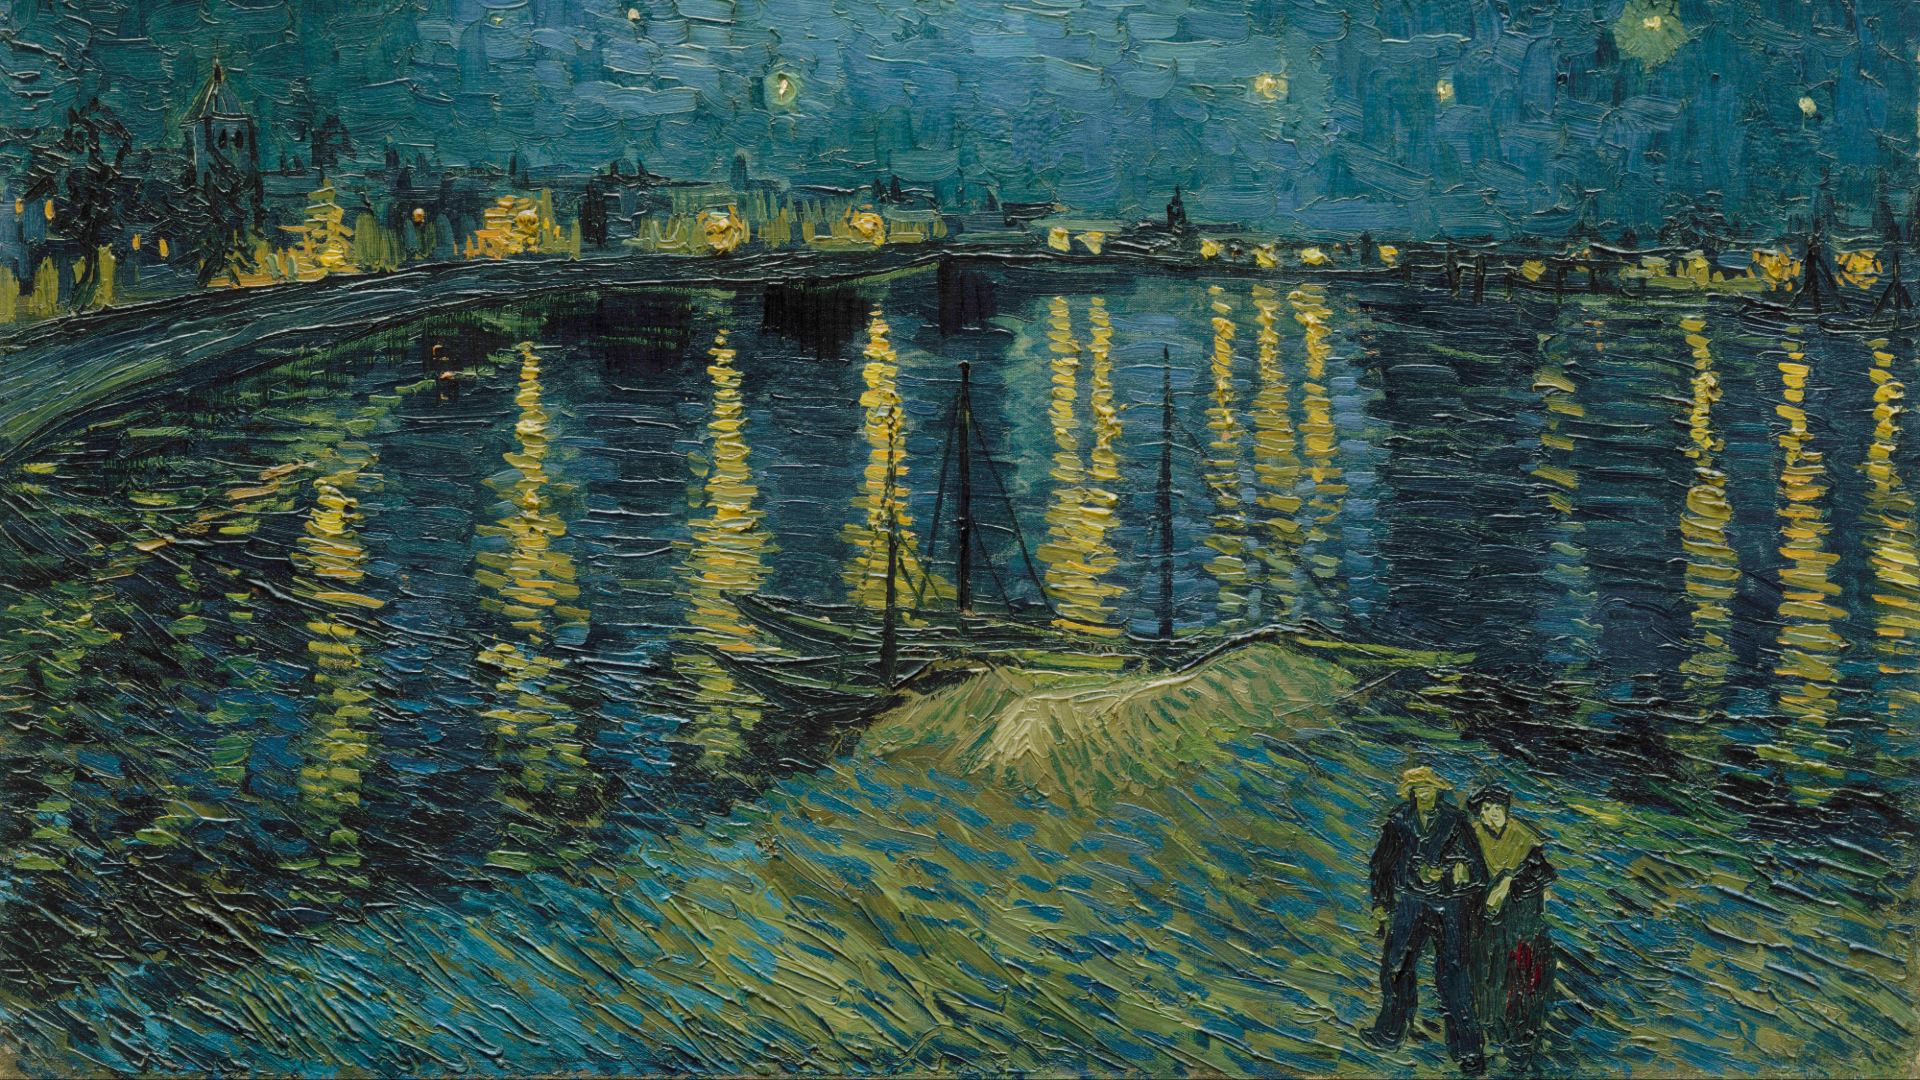 Starry Night on the Rhône by Van Gogh as part of the Van Gogh and Britain exhibition at Tate Britain